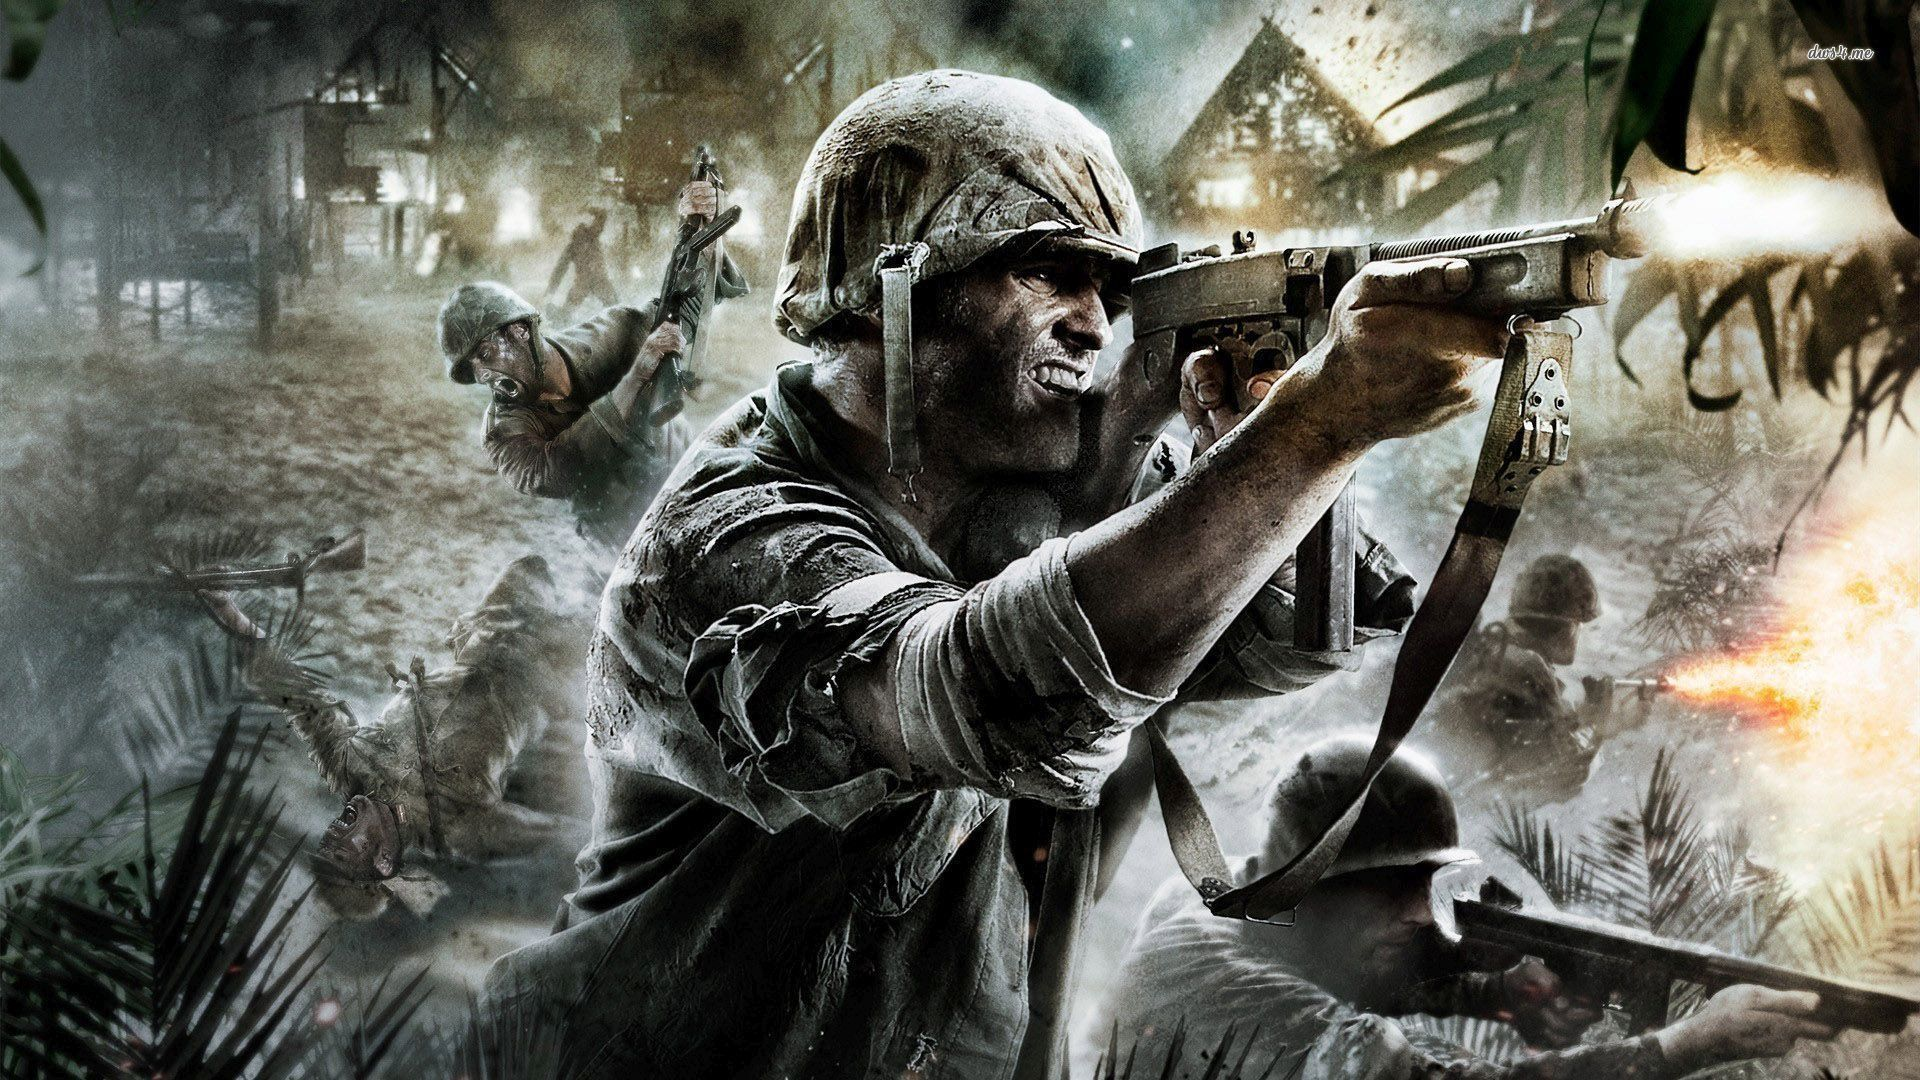 Call of duty world at war wallpapers top hdq call of duty - Best war wallpapers hd ...